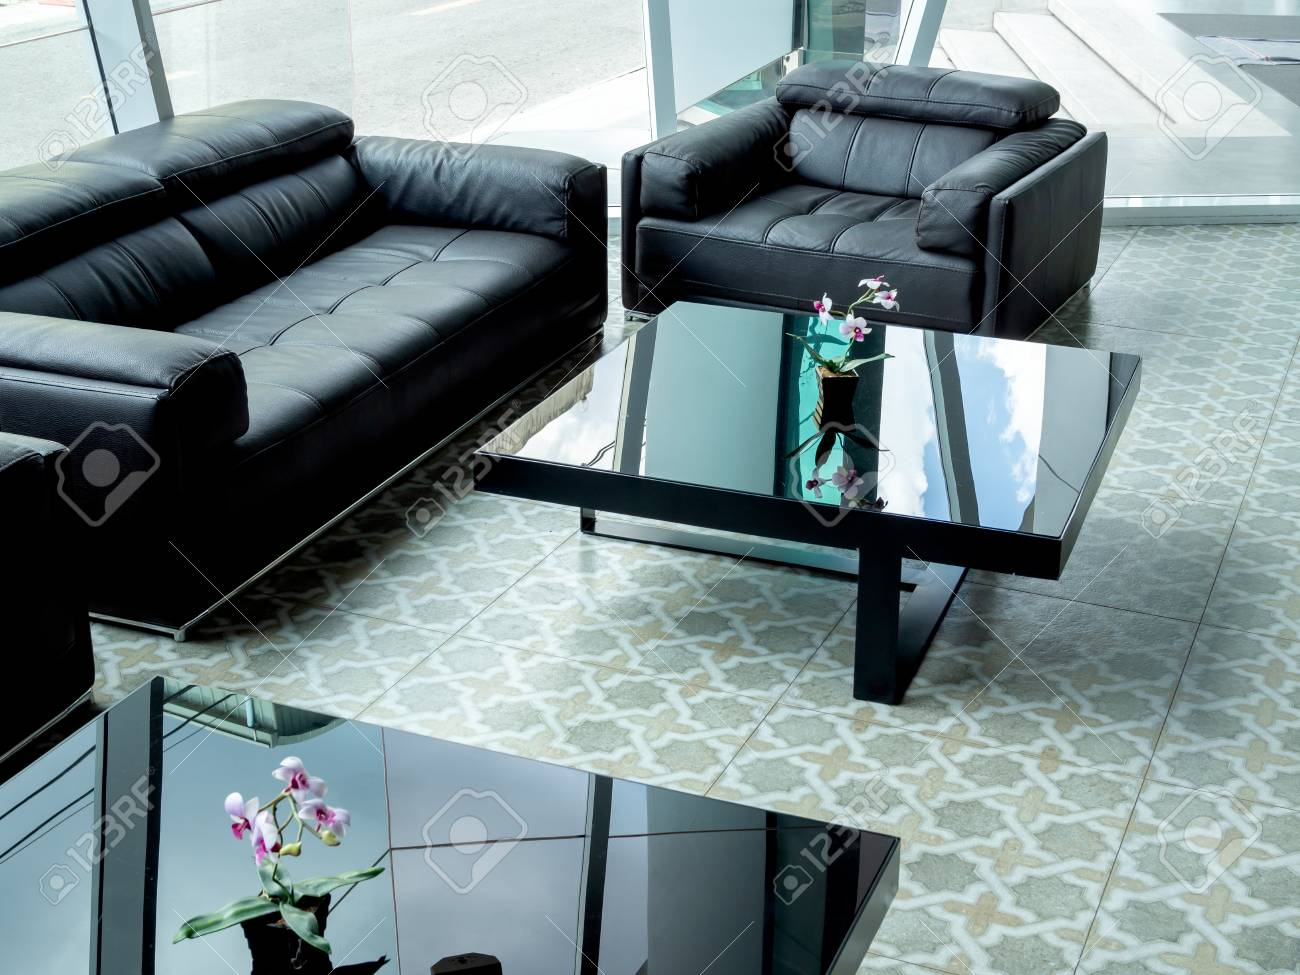 Modern black leather sofa and black glass table on tile flooring..